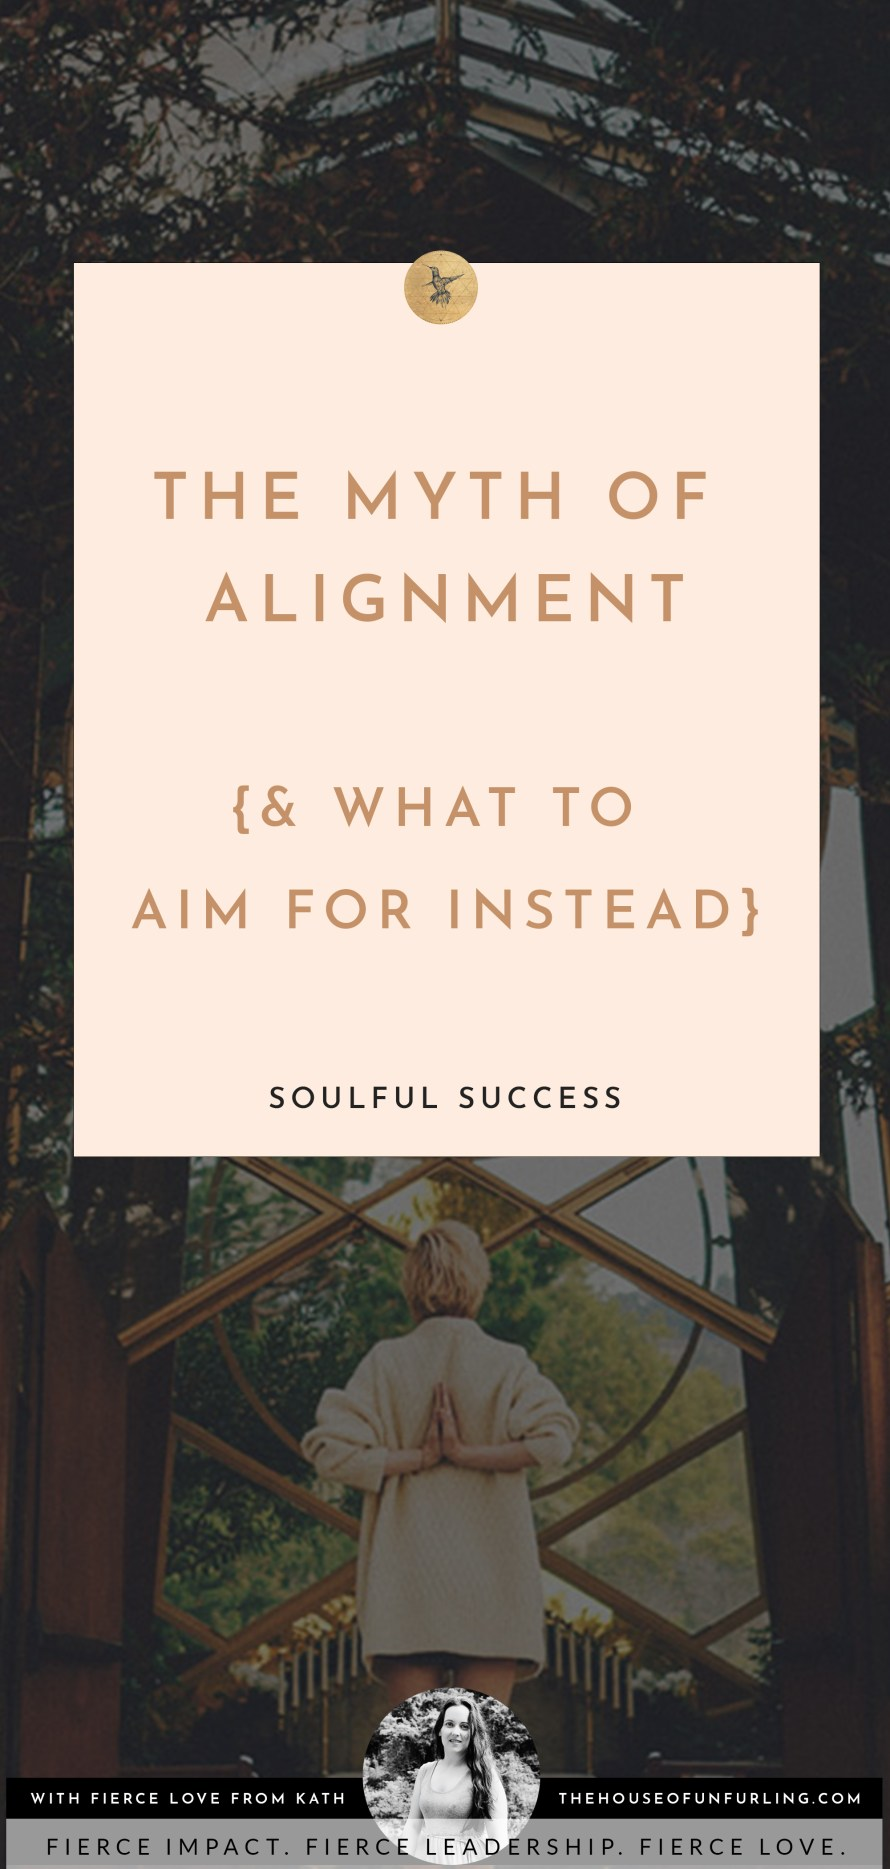 CLICK THROUGH TO READ:  the myth of alignment and what to aim for instead. From soulful success. With fierce love, Kath - kathleensaelens.com